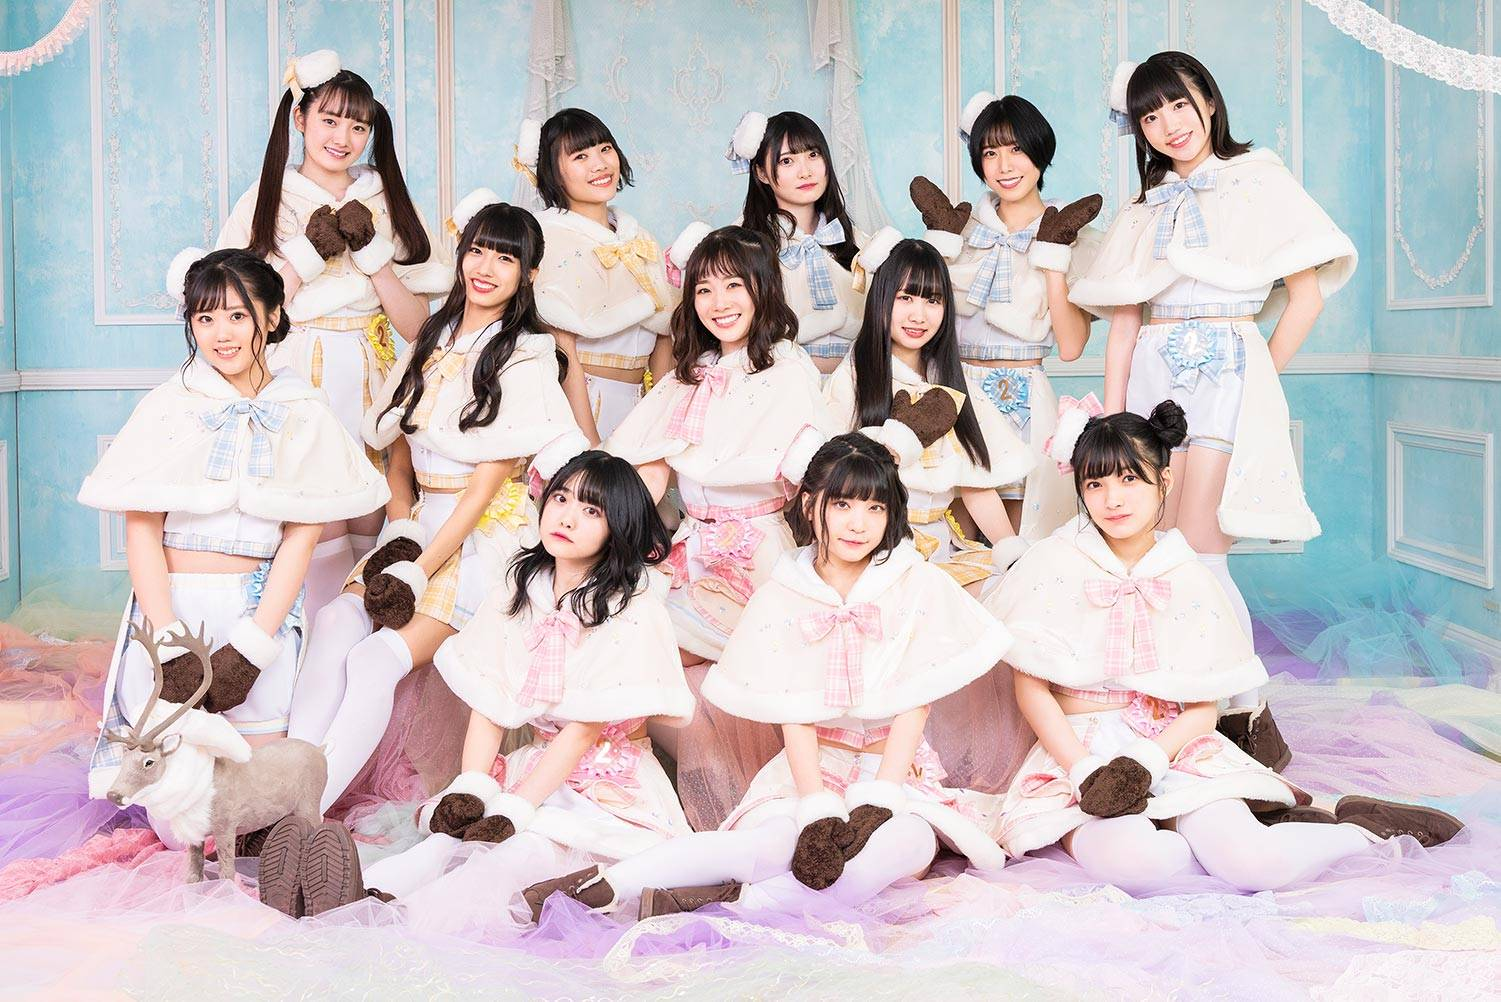 Niji no Conquistador Japanese idol group jpop